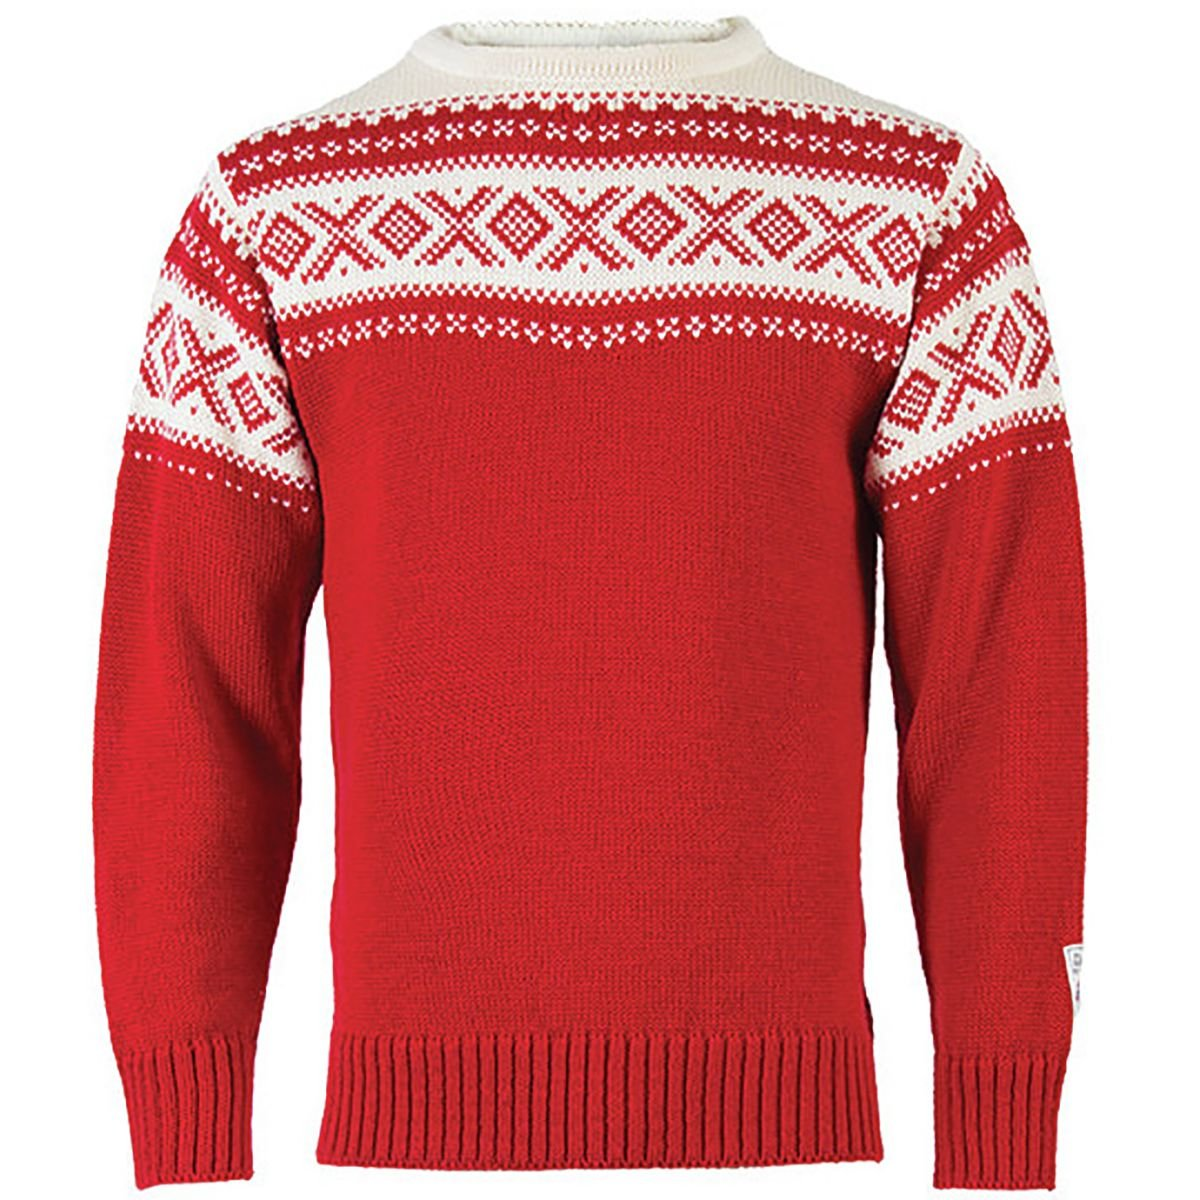 Dale of Norway Cortina 1956 Sweater, Rot Off Weiß, XS